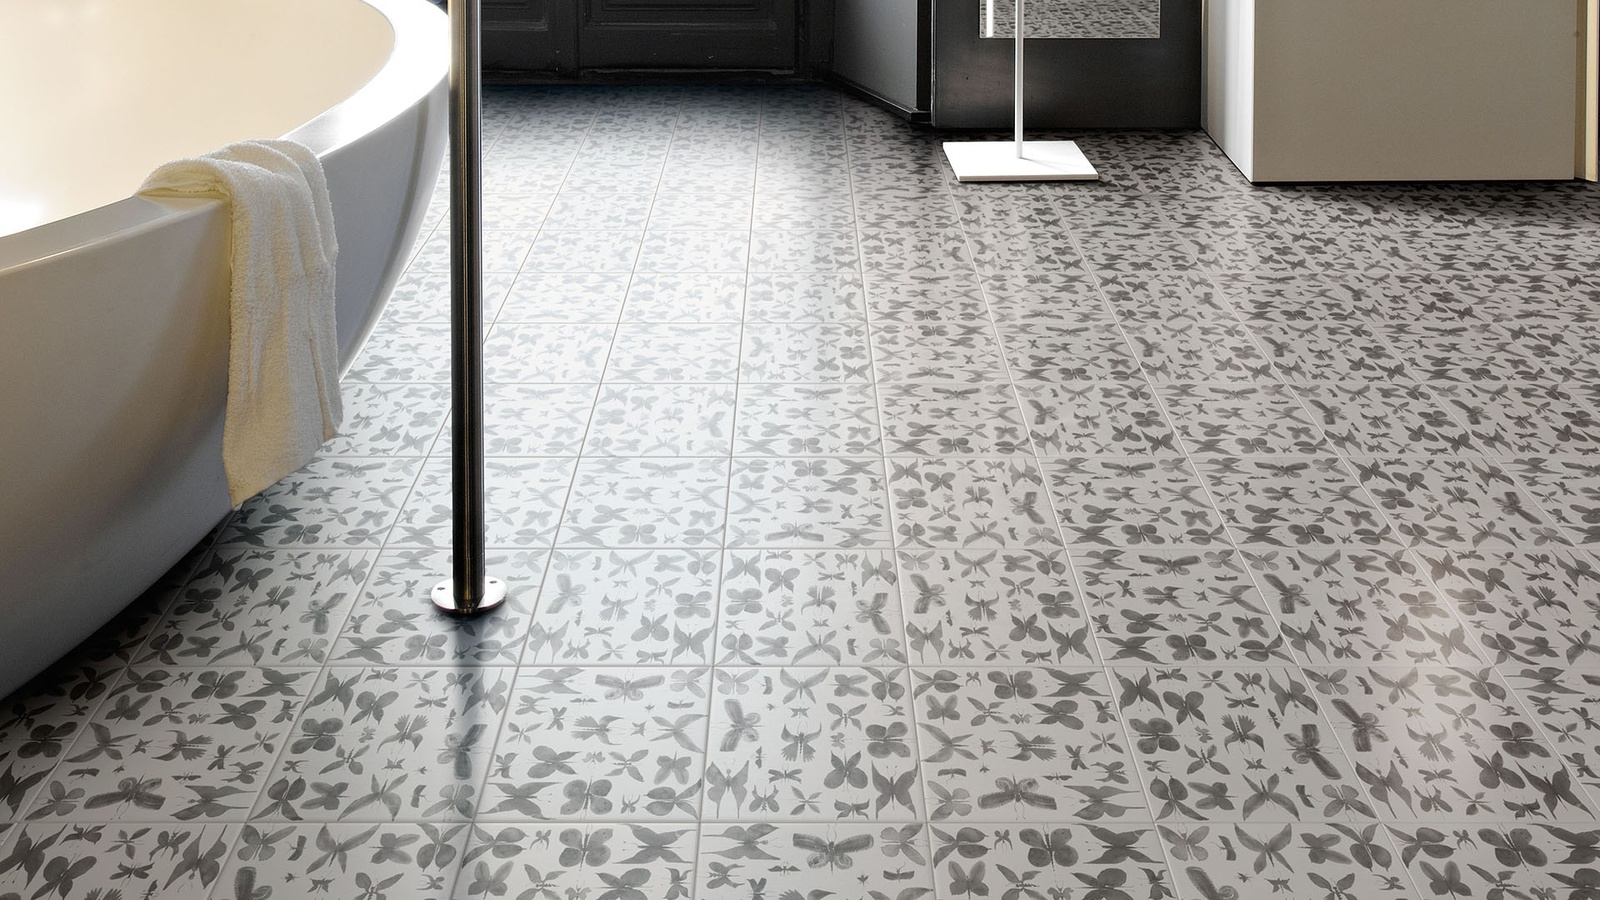 Bathroom Floor Tile Design Patterns. View In Gallery  Hand Painted Ceramic Tiles